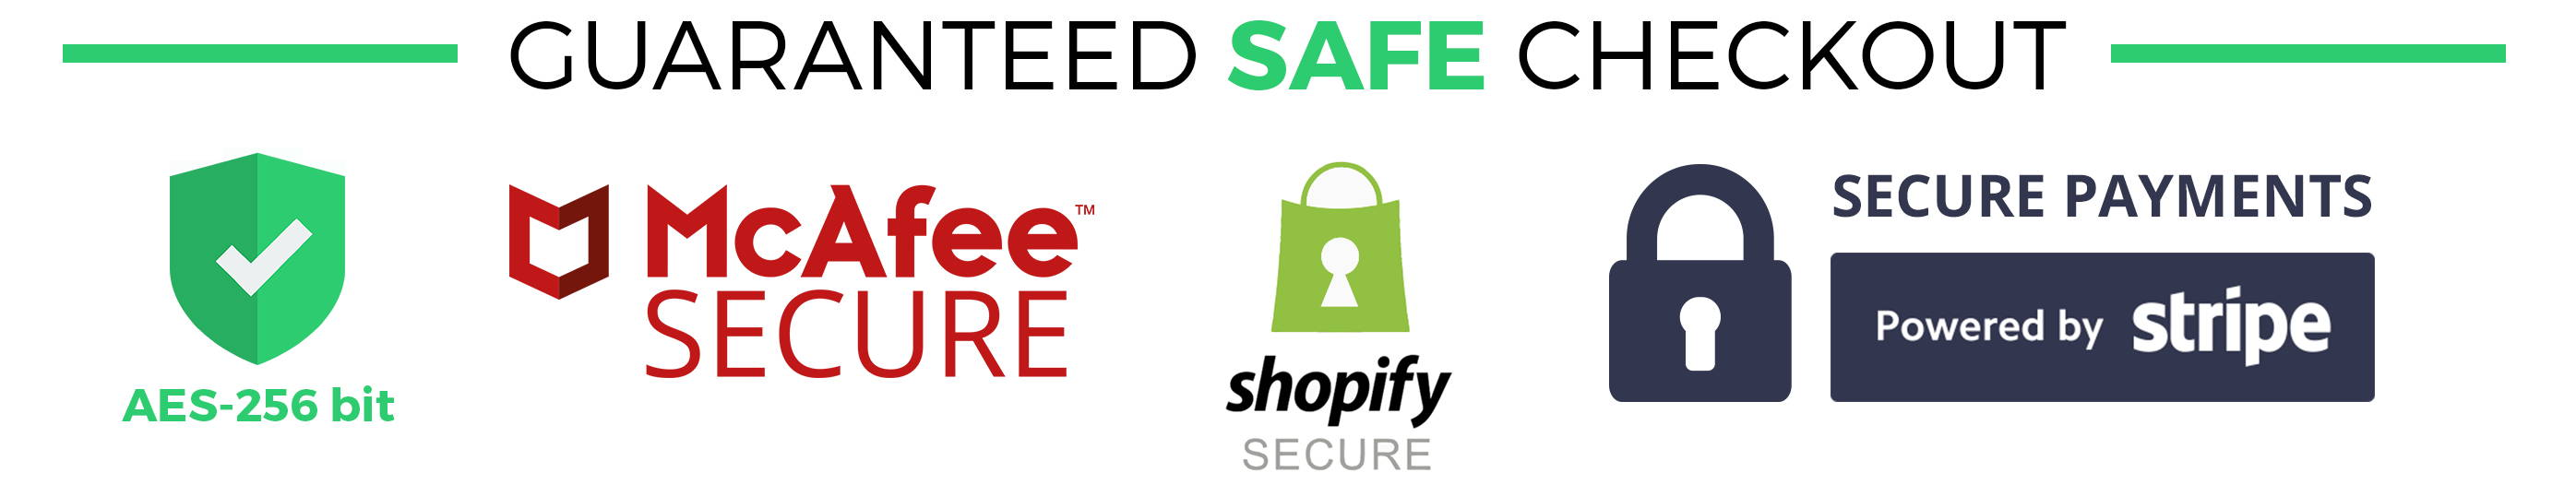 secure purchase options